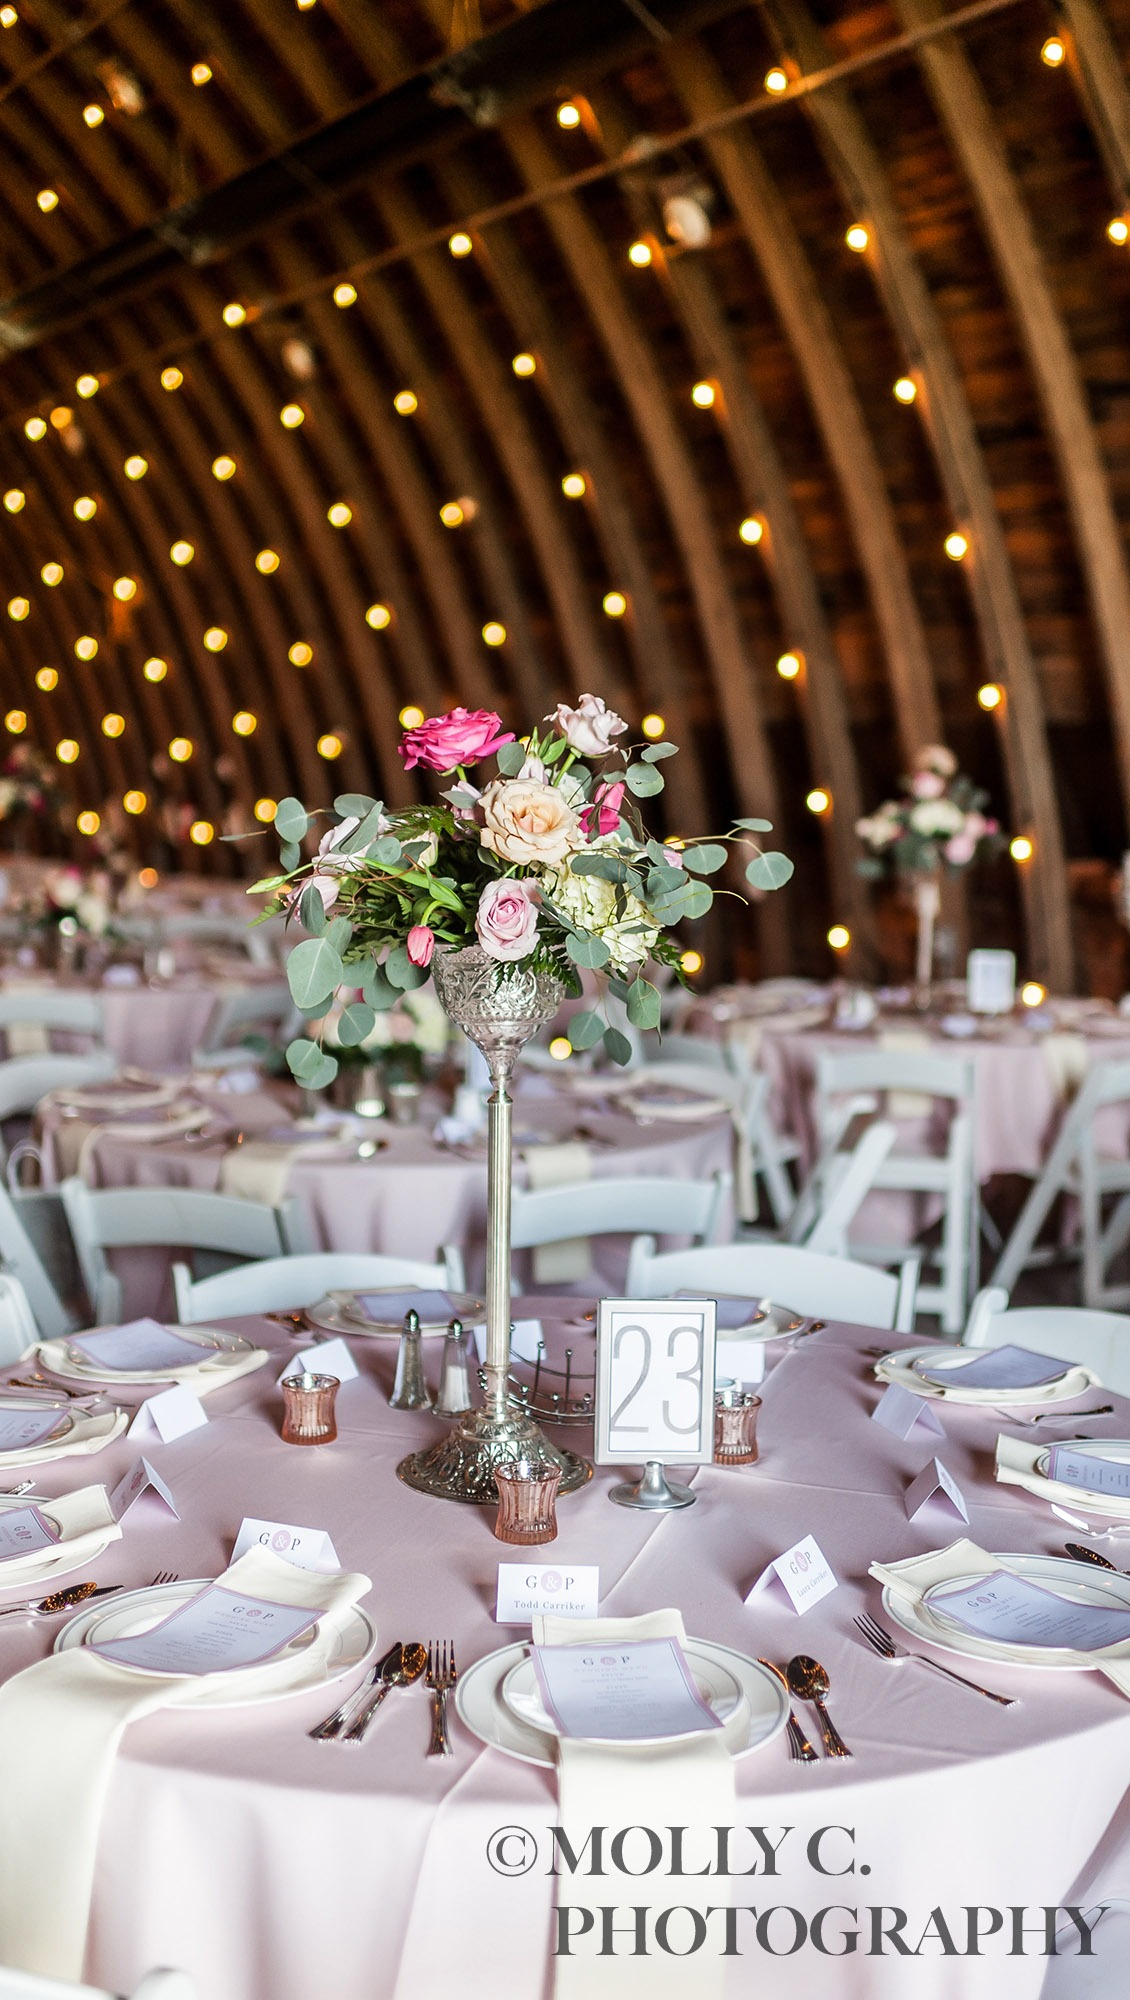 Tall floral centerpiece   Molly C. Photography   Debbie's Celebration Barn